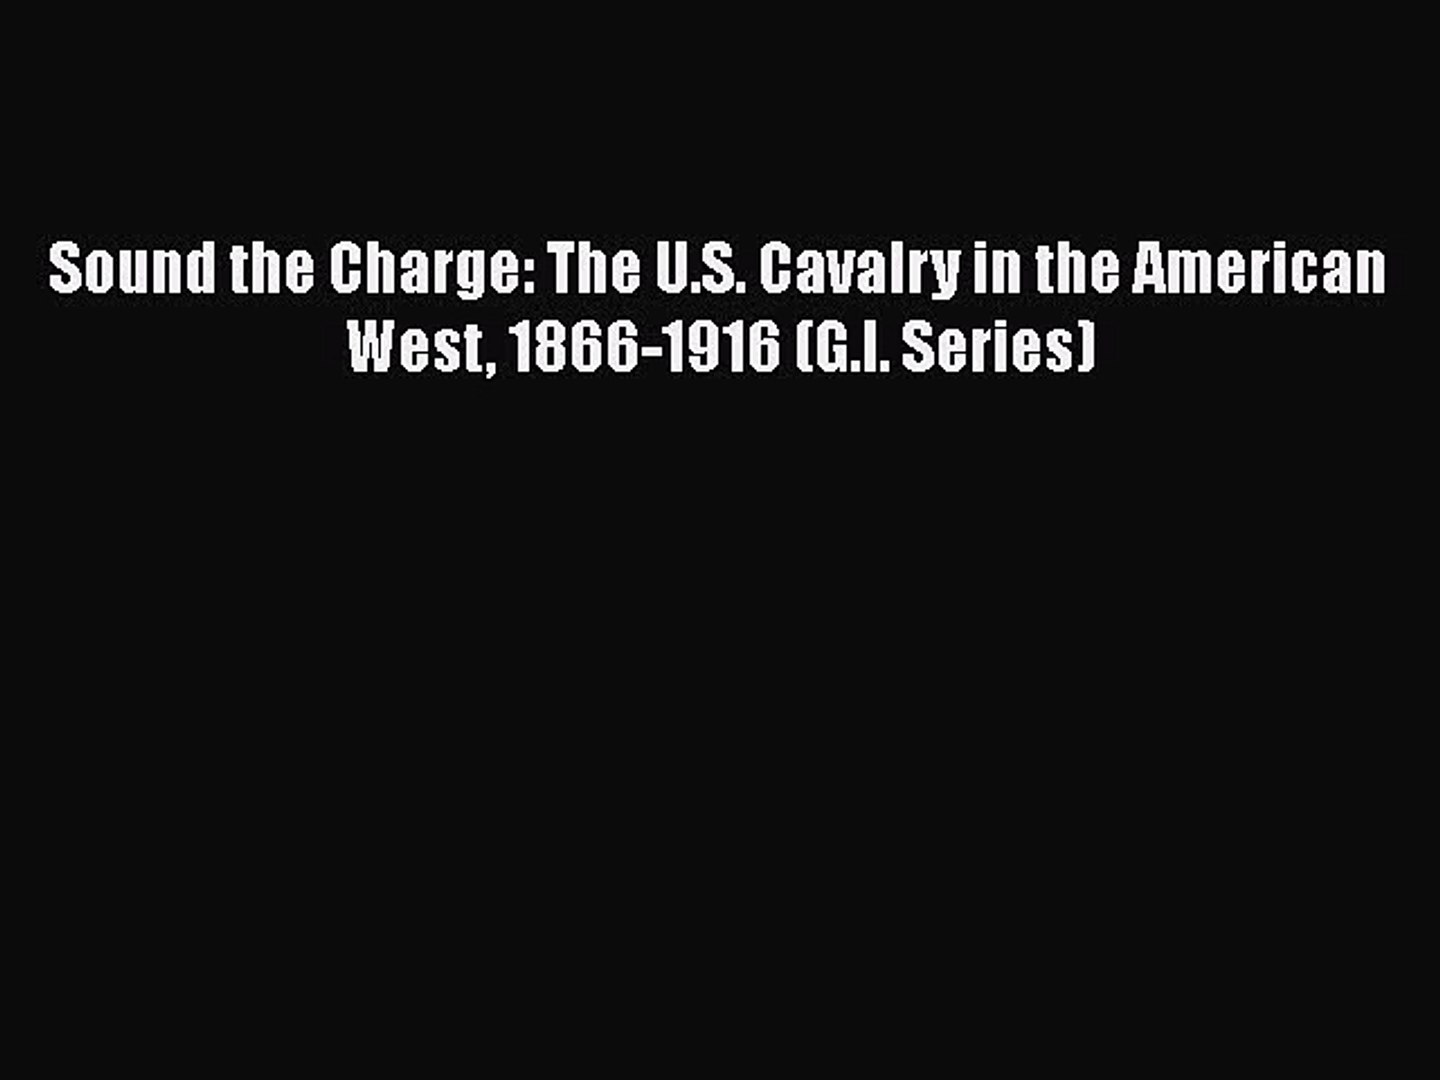 [Read book] Sound the Charge: The U.S. Cavalry in the American West 1866-1916 (G.I. Series)